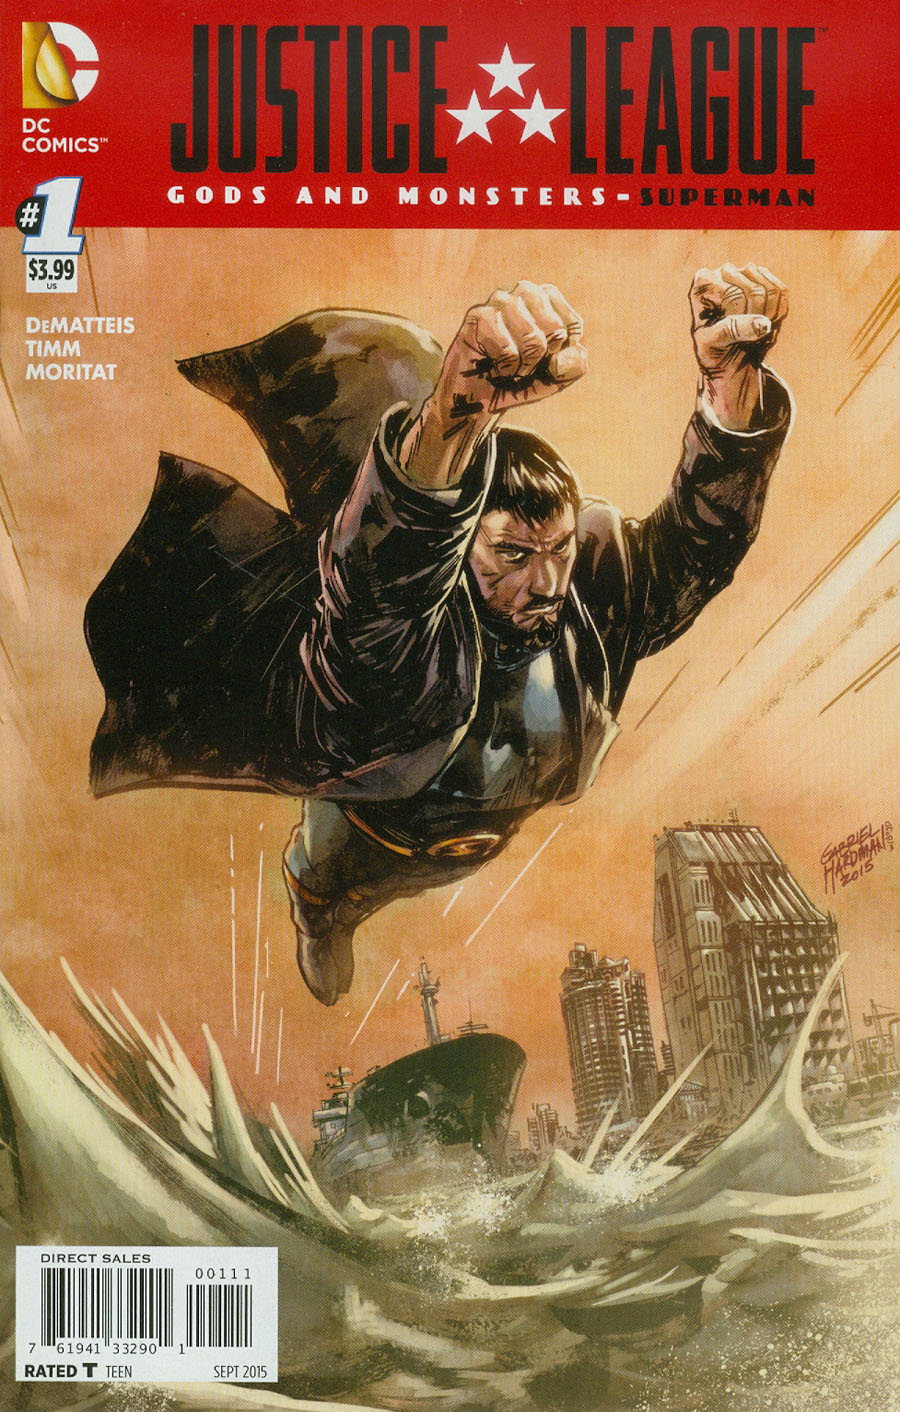 Justice League Gods And Monsters Superman #1 Cover A Regular Gabriel Hardman Cover